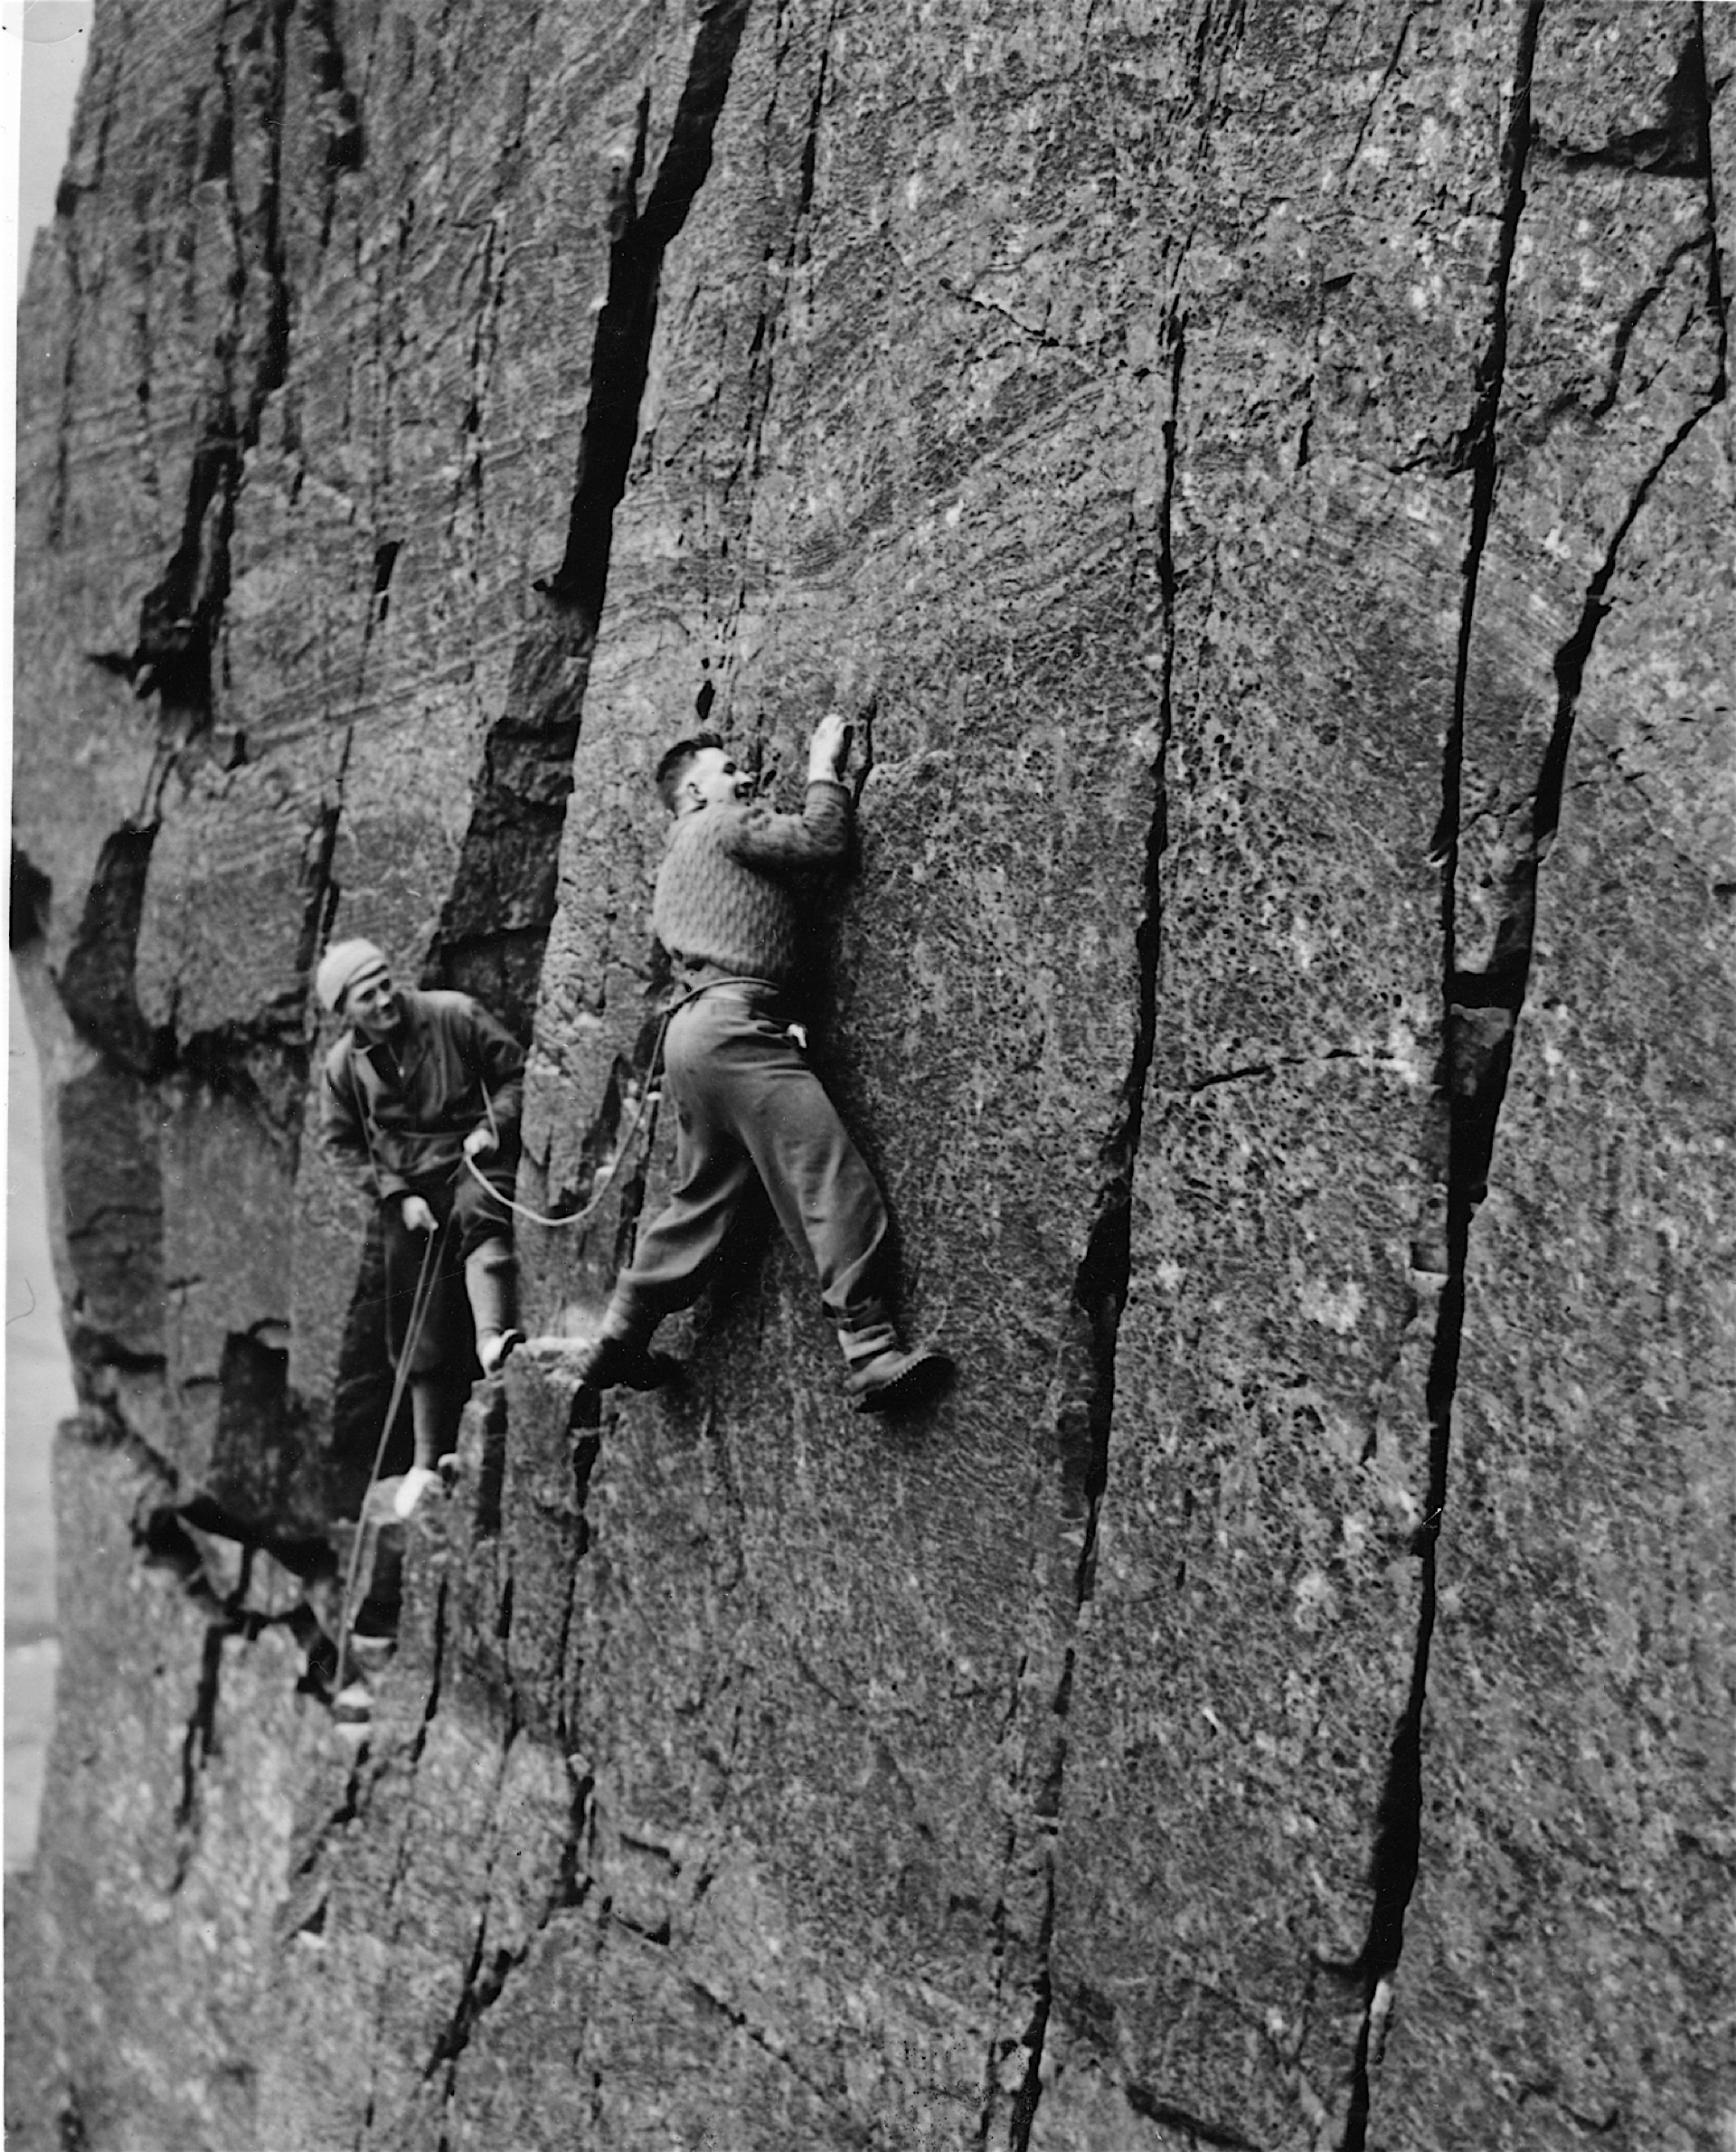 Jim Birkett, centre, with Len Muscroft, left, and Charlie Wilson, right, on top after their first ascent of Overhanging Bastion up the North Face of Castle Rock. It's now graded HVS 5a and at the time the climb caused a sensation because it was much bolder and harder than any other rock climb in Britain. The headlines in the press read 'Lakeland Everest Conquered'. It's still a considerable undertaking even with today's modern equipment and footwear.